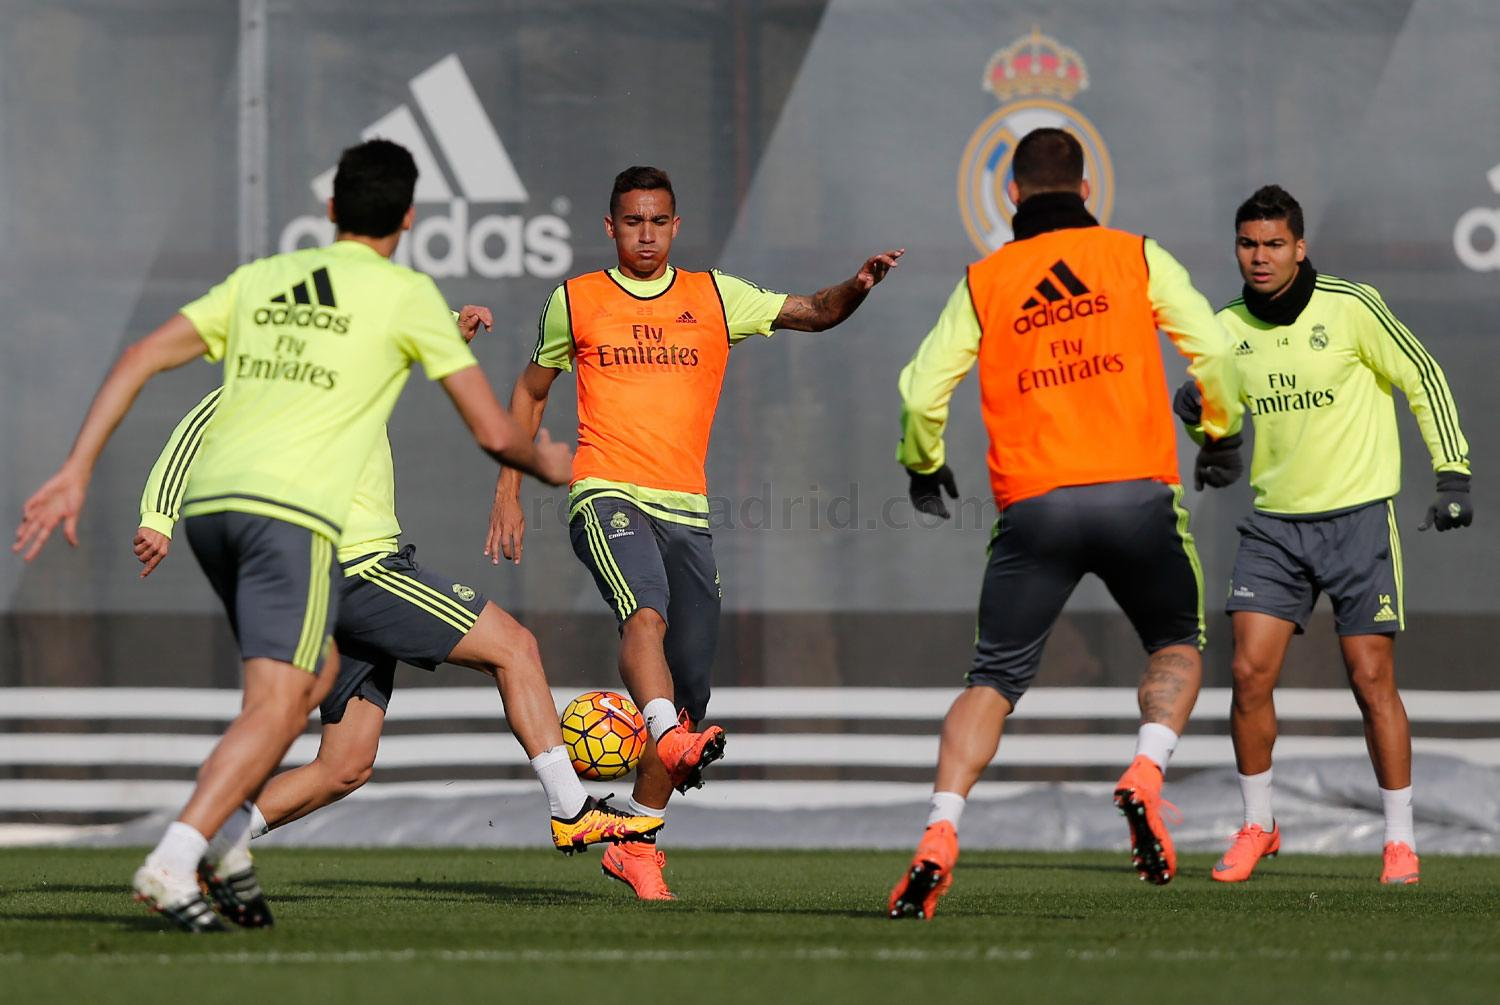 Real Madrid - Entrenamiento del Real Madrid - 18-02-2016